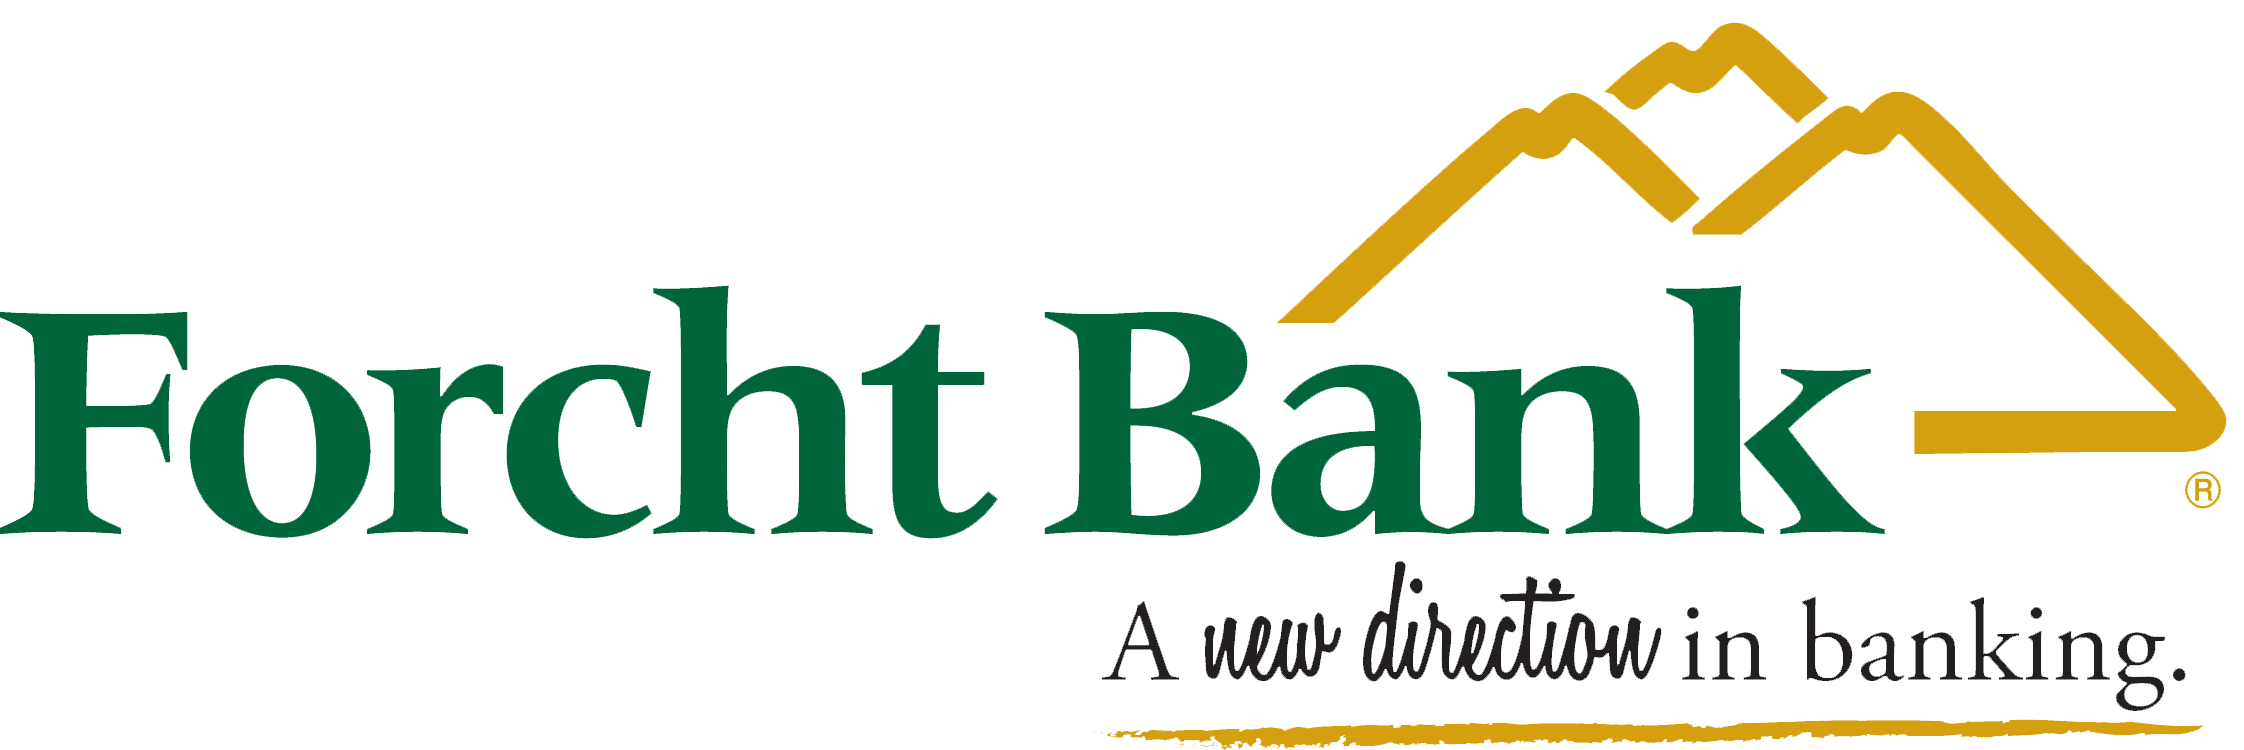 Forcht Bank_5782712.png